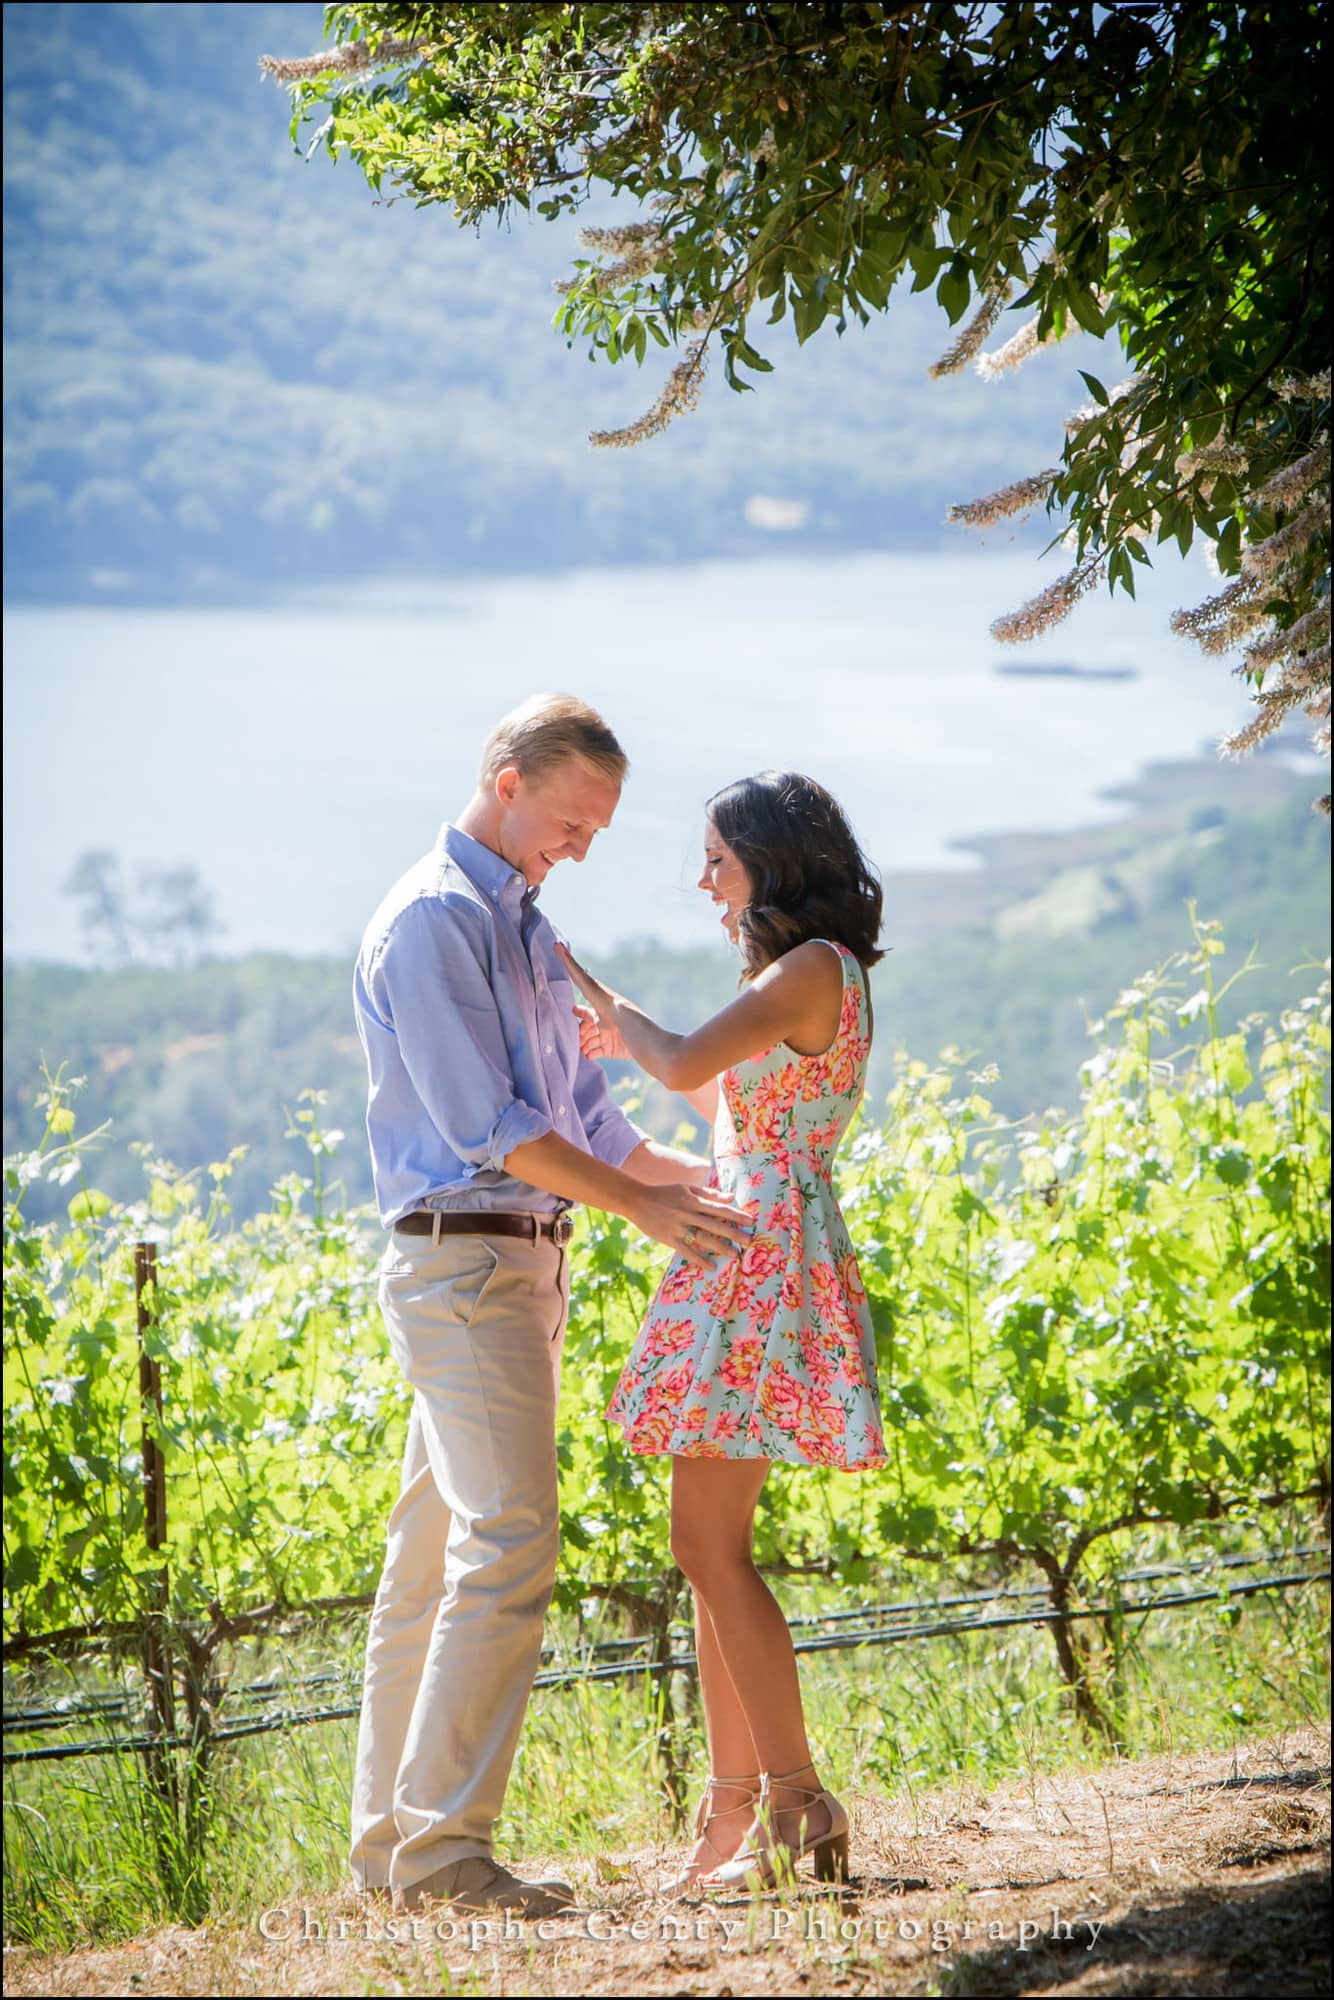 Marriage Proposal Photography at Jacuzzi Family Vineyards in Sonoma, CA